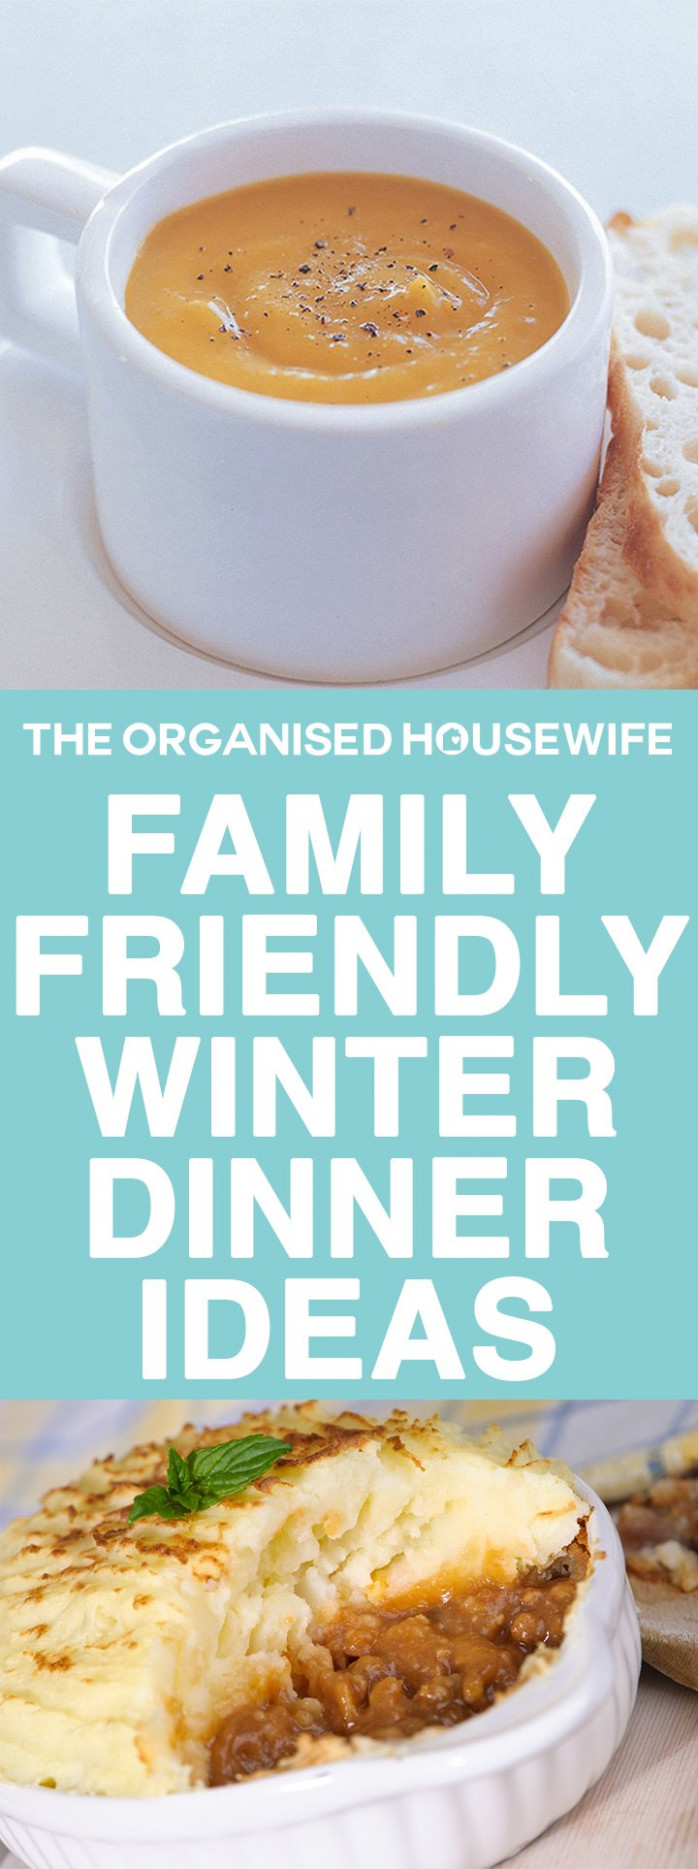 Family Friendly Winter Dinner Ideas - The Organised Housewife - Recipes Dinner Winter